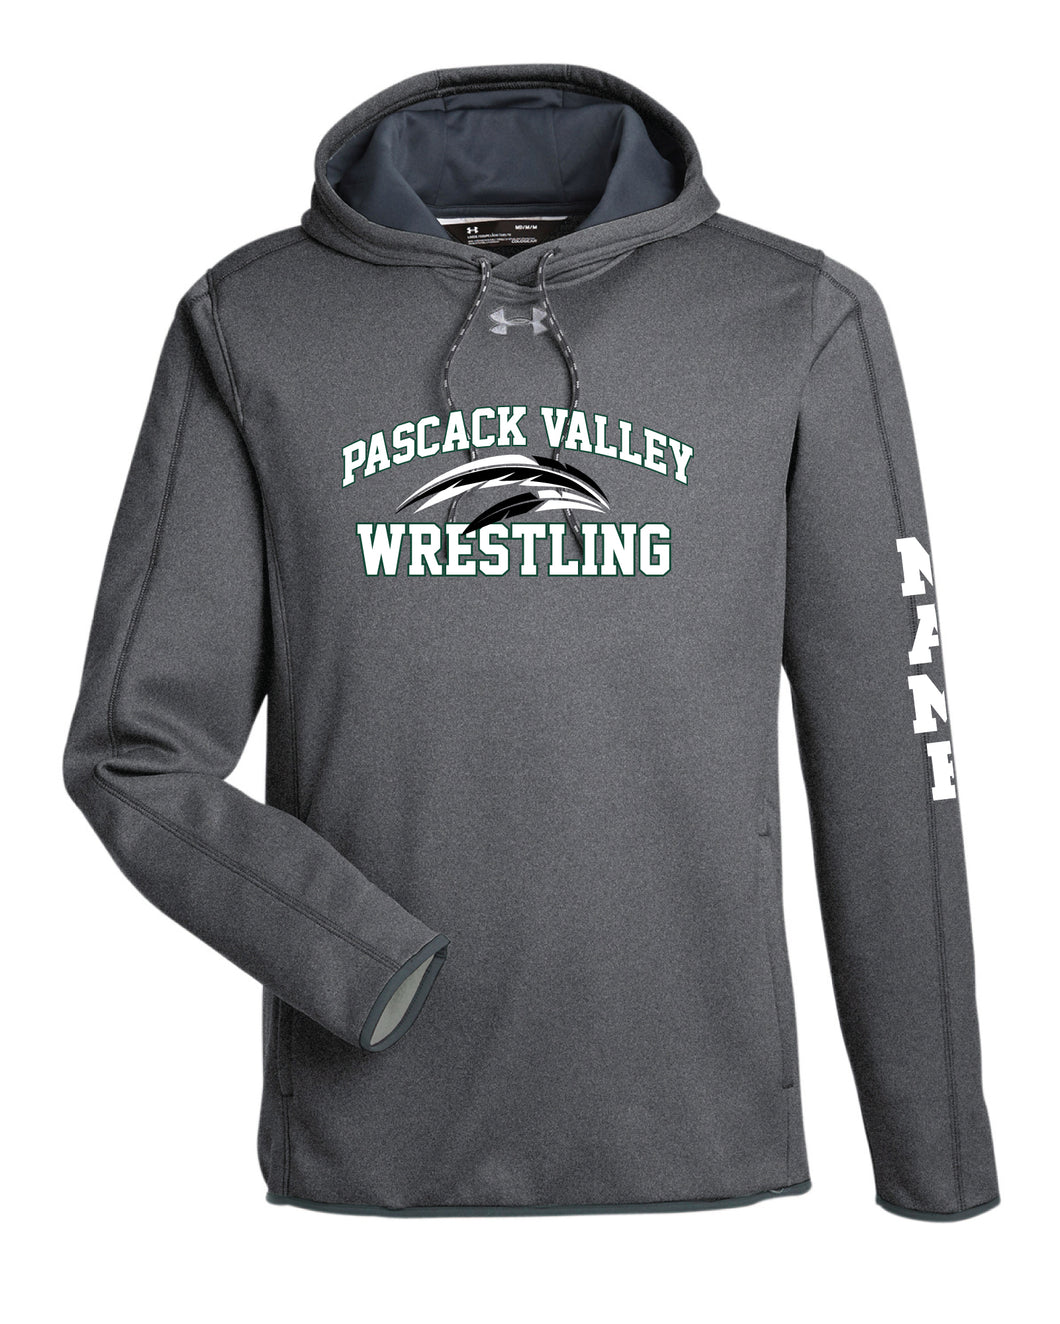 Pascack Valley Wrestling Under Armour Men's Fleece Hoodie - Grey - 5KounT2018